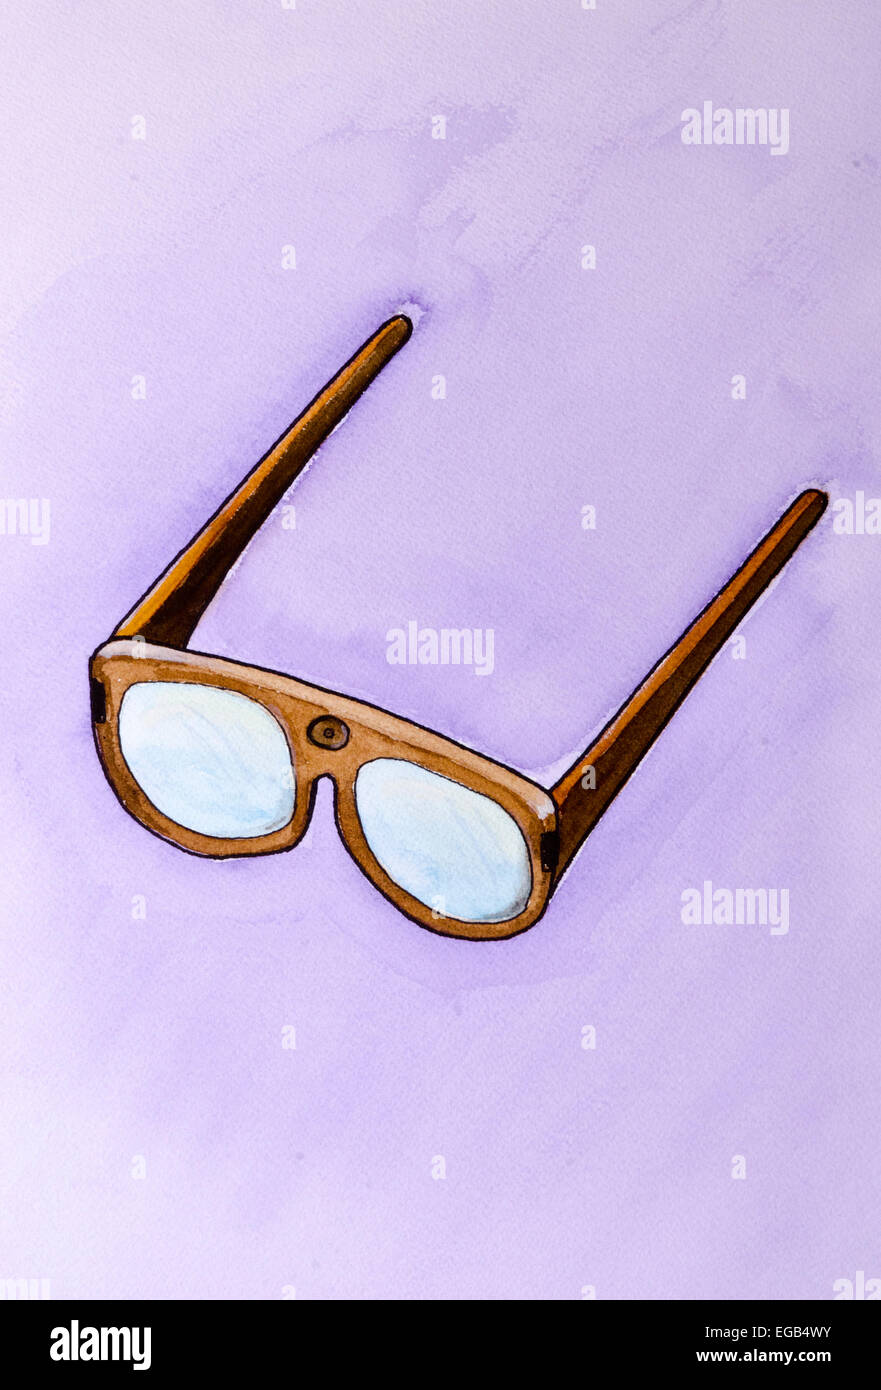 Spy Glasses with camera - Stock Image